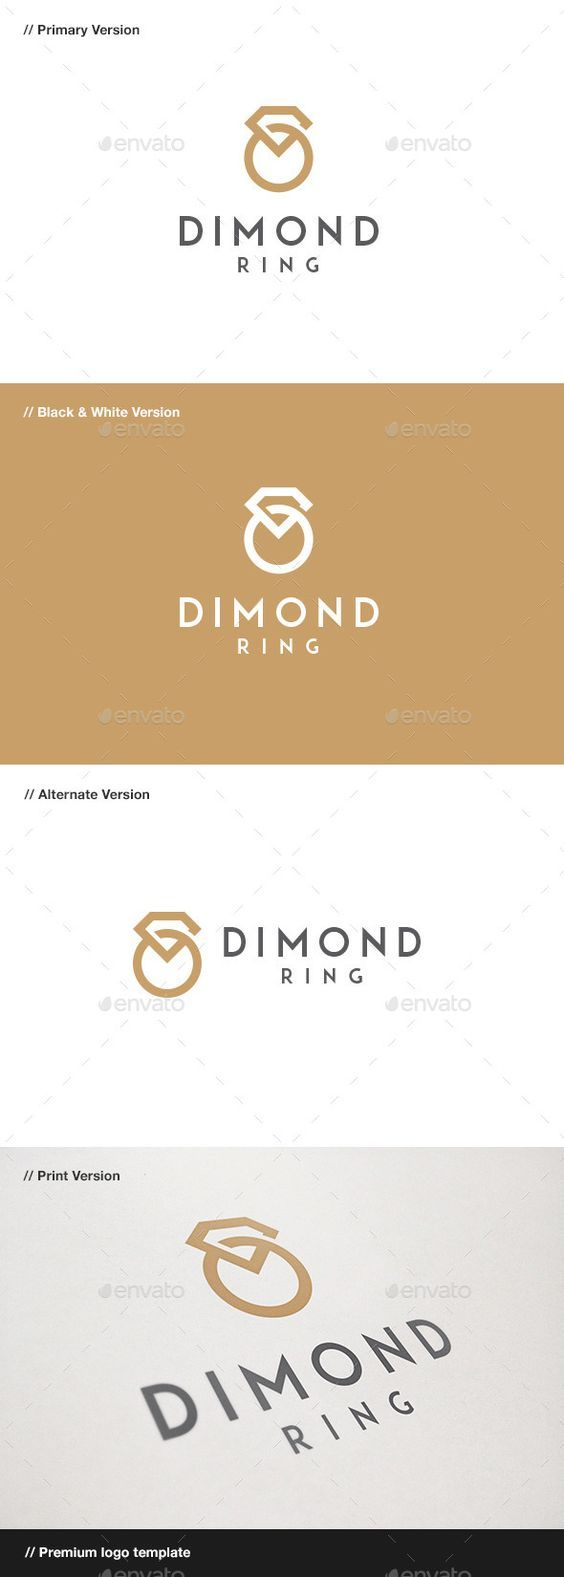 gemstones jewellery background diamond for photo image gems jewelry bigstock design or use vector stock logo